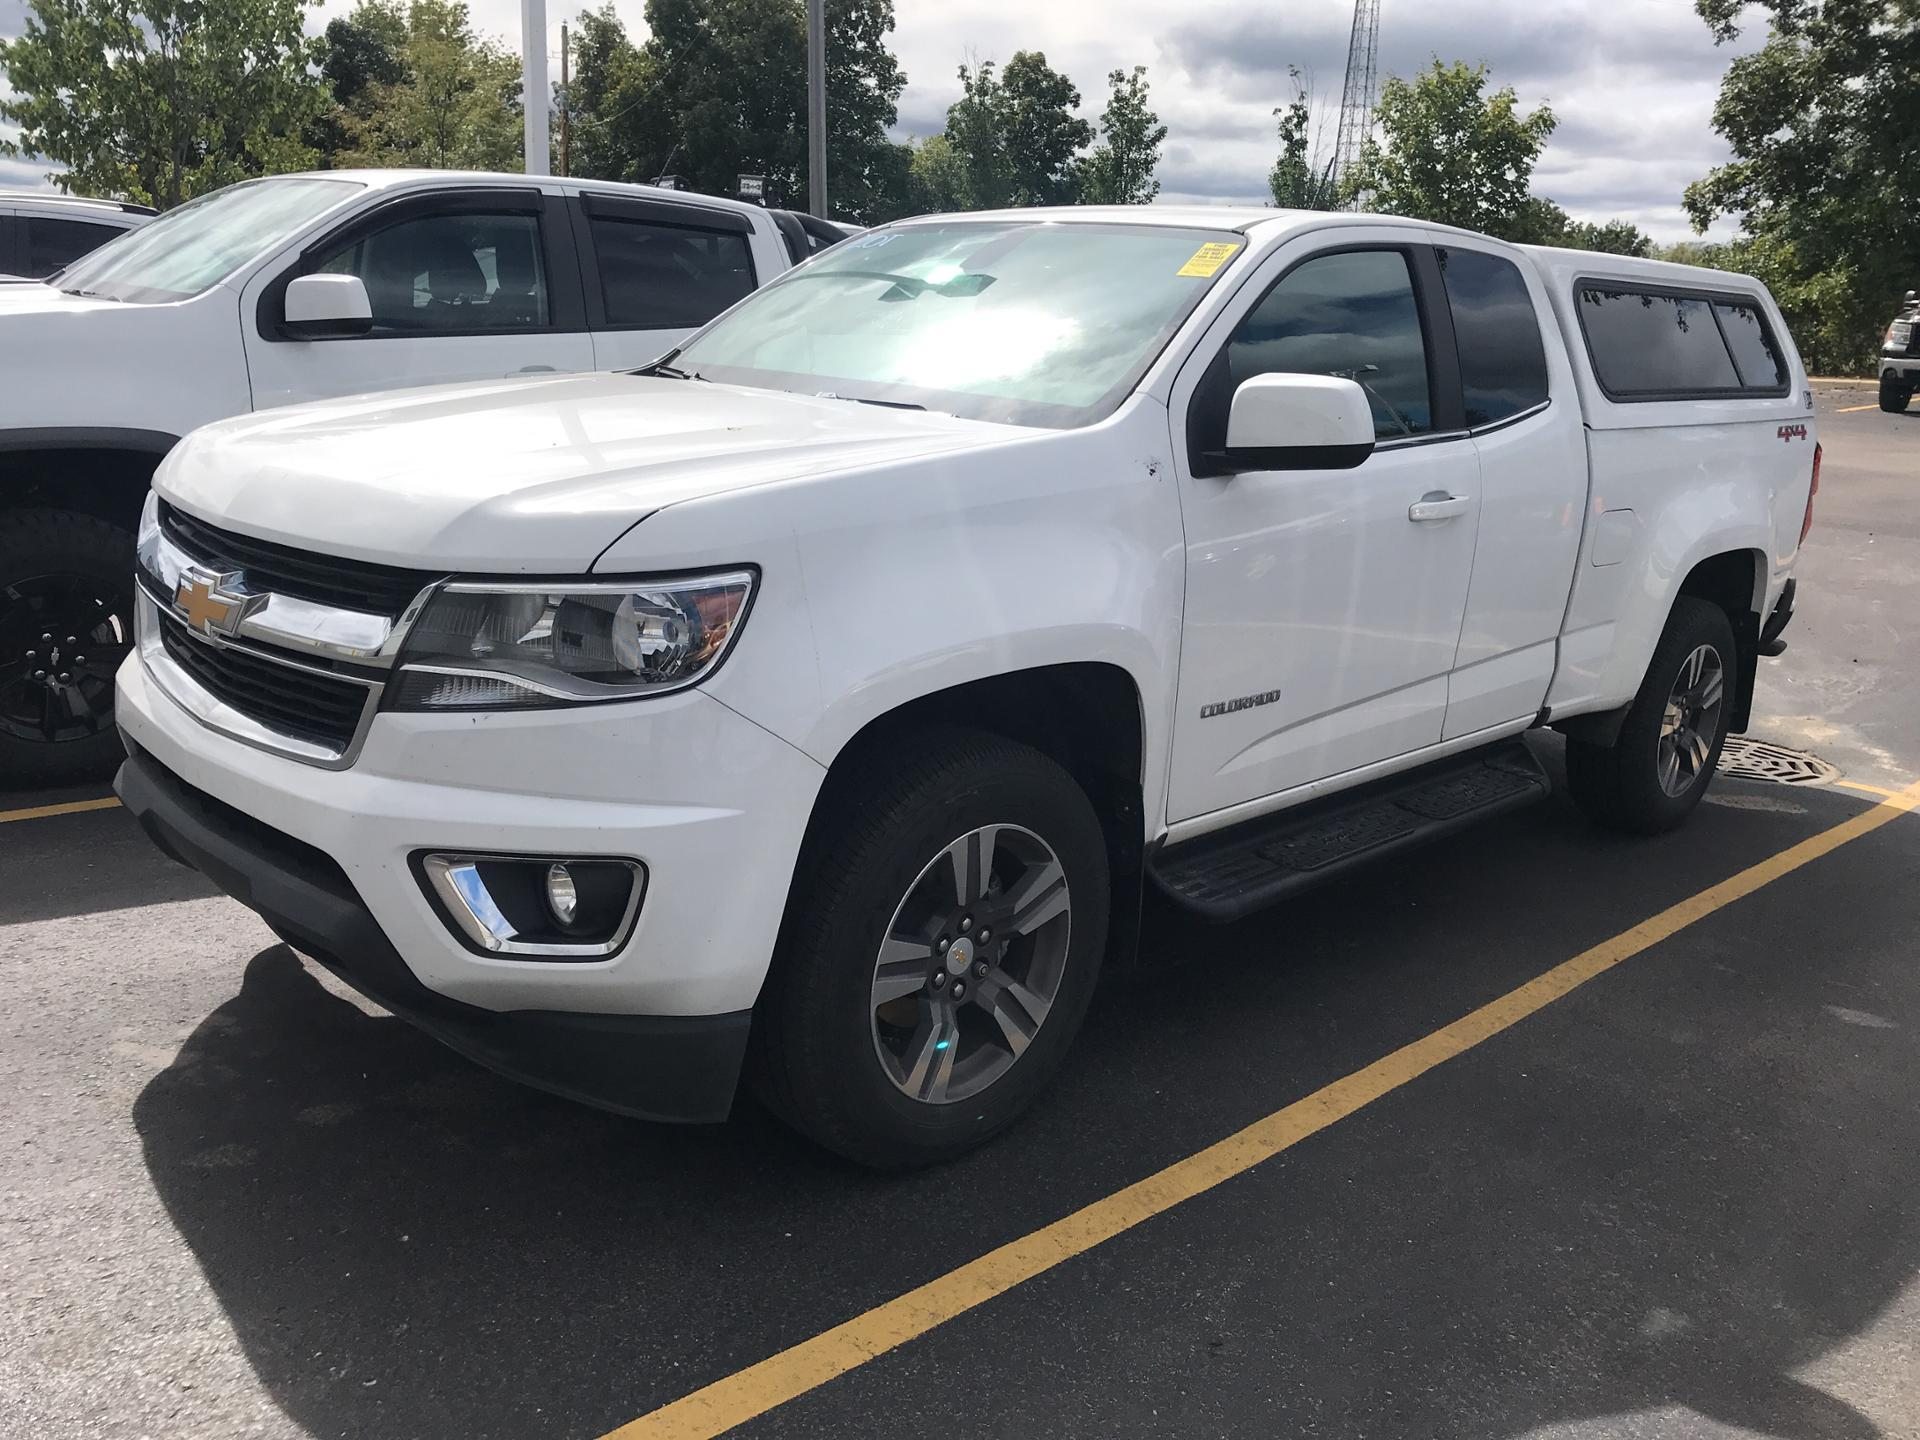 Used 4 Wheel Drive Cars for Sale Near Me New Find Used Chevrolet Colorado Vehicles for Sale Near Jackson Michigan